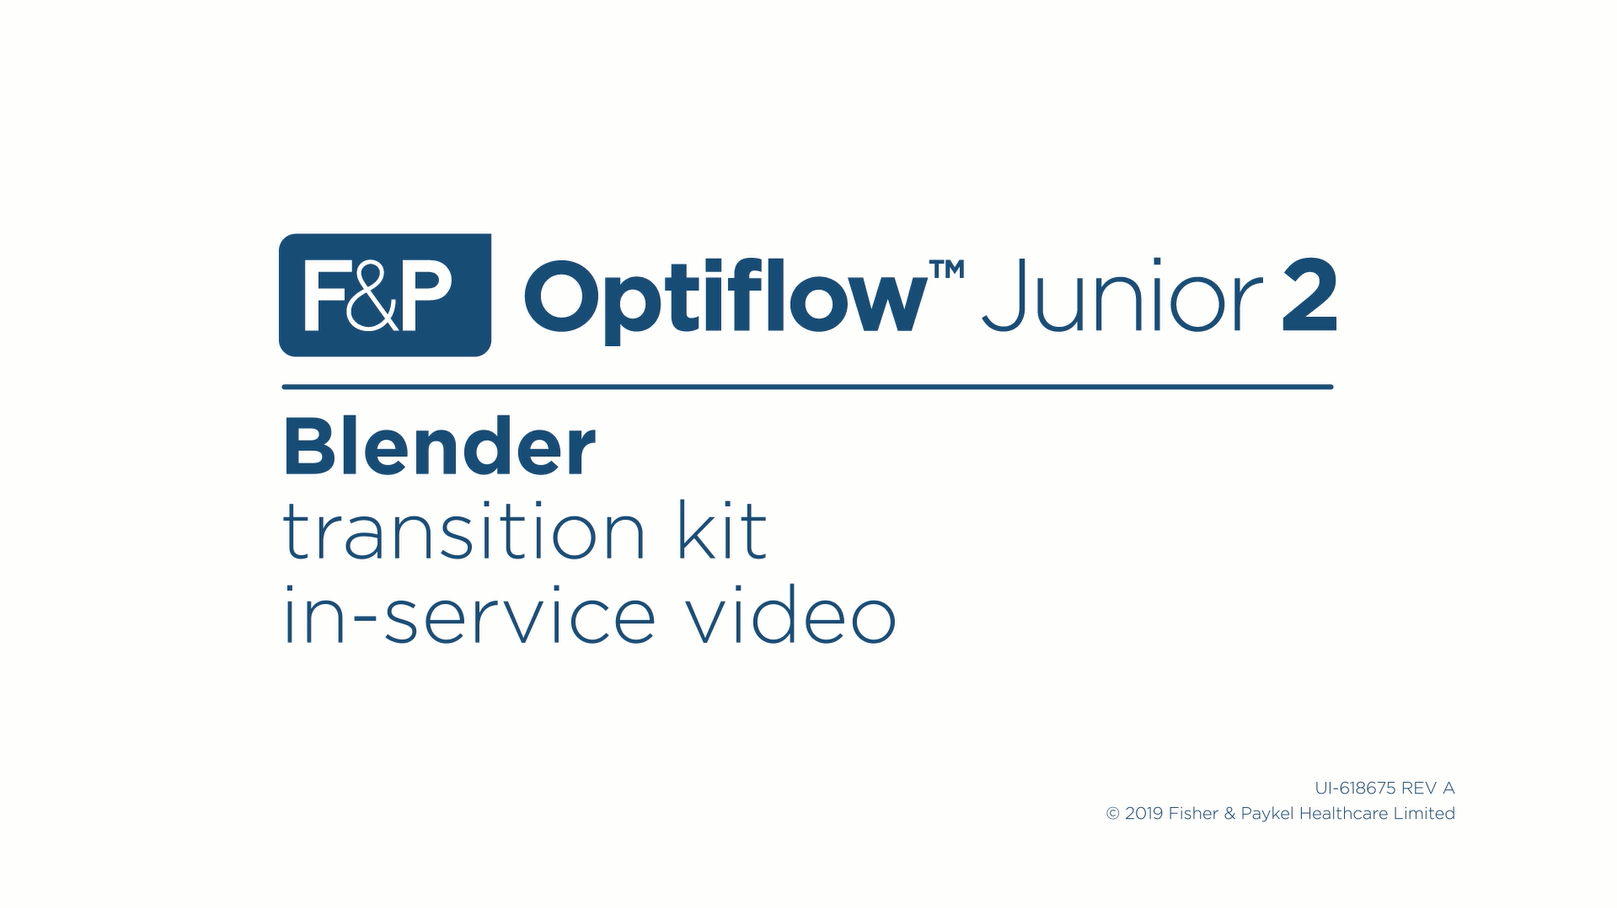 Optiflow Junior 2 Blender Transition Kit In-Service Video